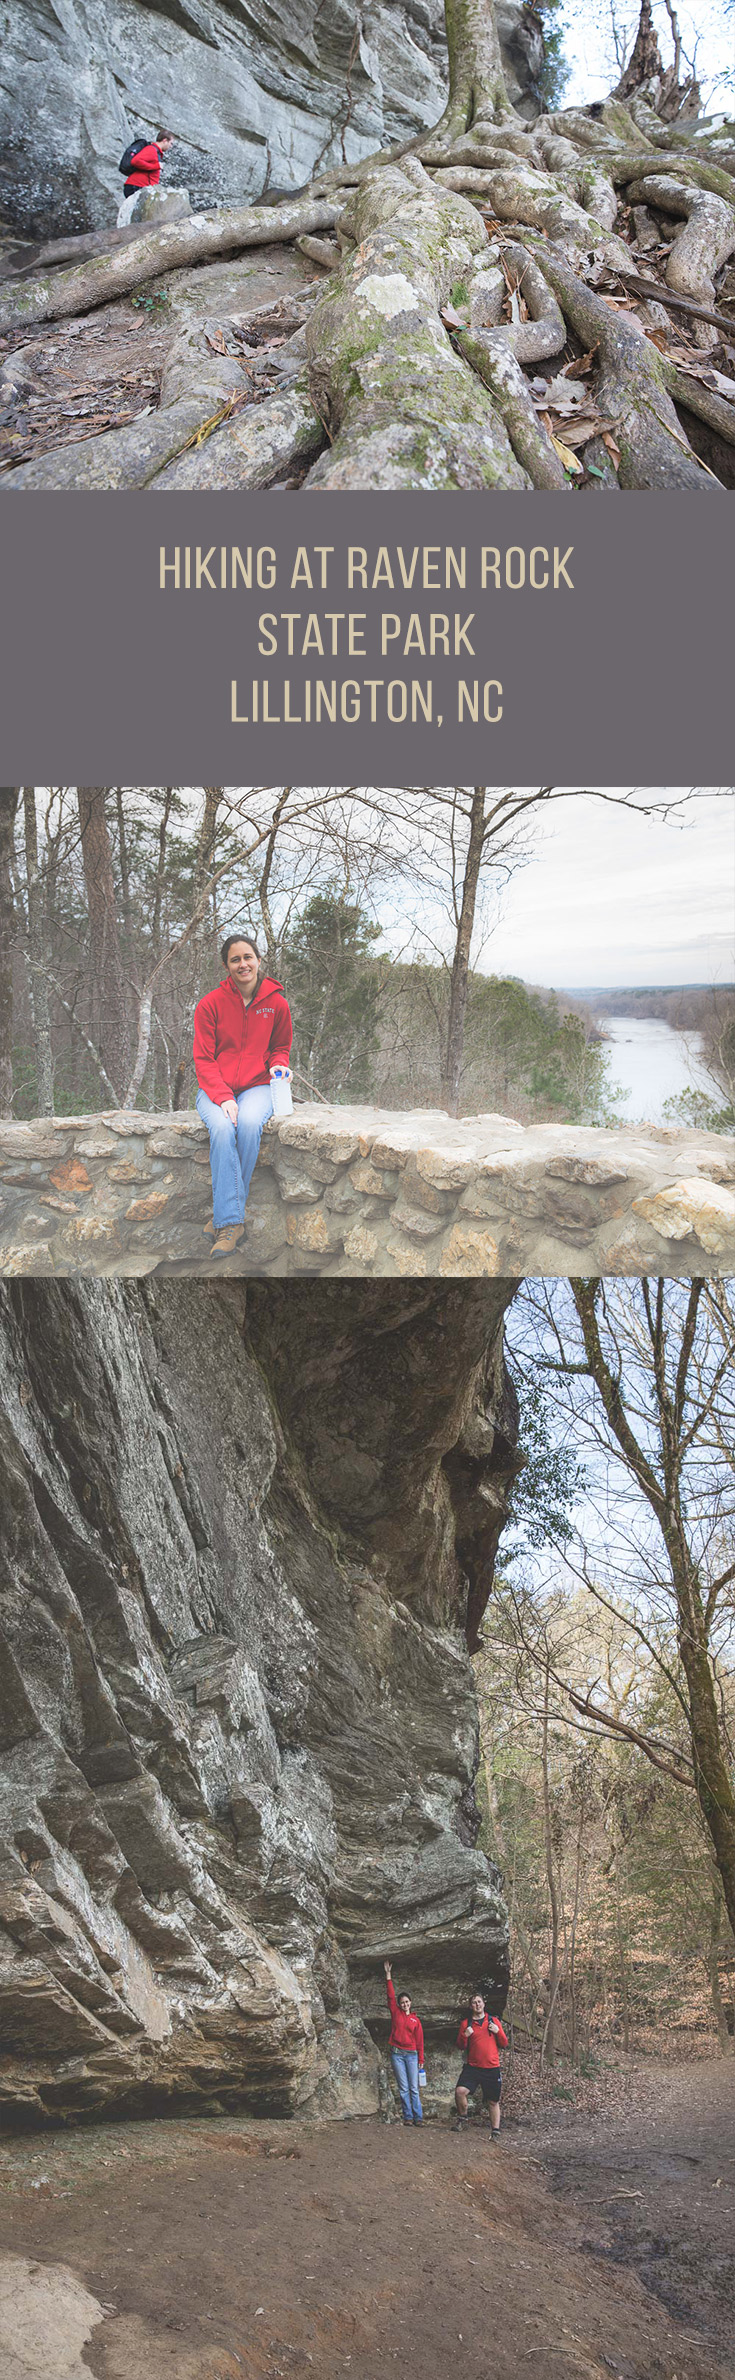 Hiking at Raven Rock State Park in Lillington, NC - a scenic overlook of the Cape Fear River, a rock wall that rises 150 above the river, and plenty of fun boulders to scramble over!